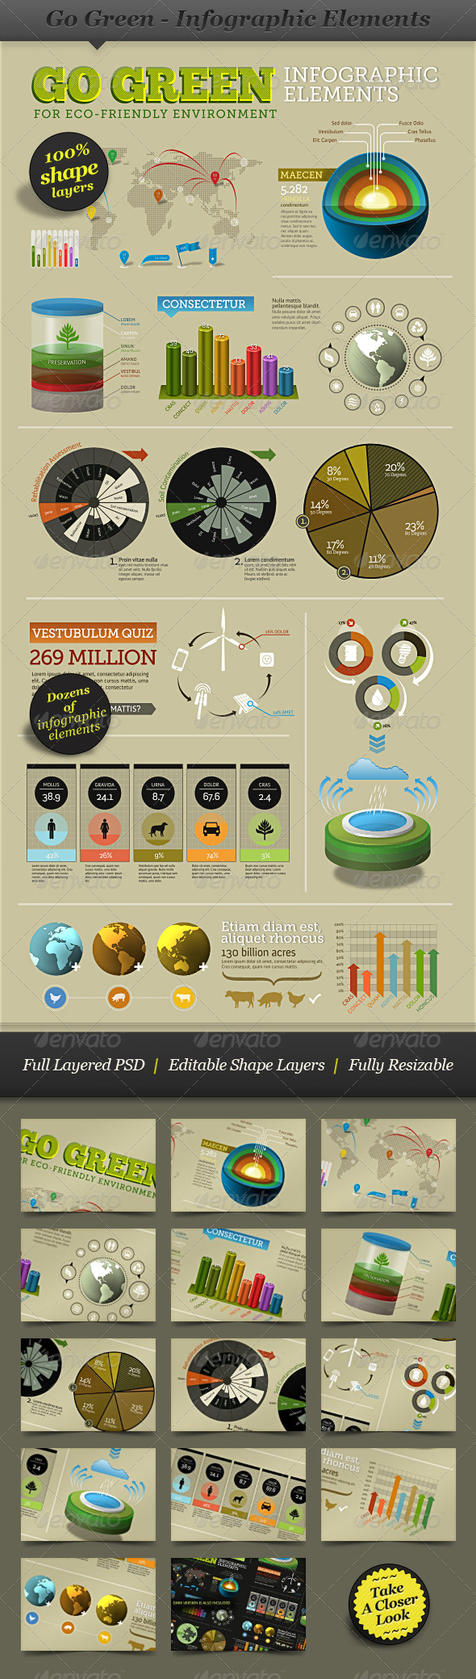 Go Green Infographic Elements by ranfirefly